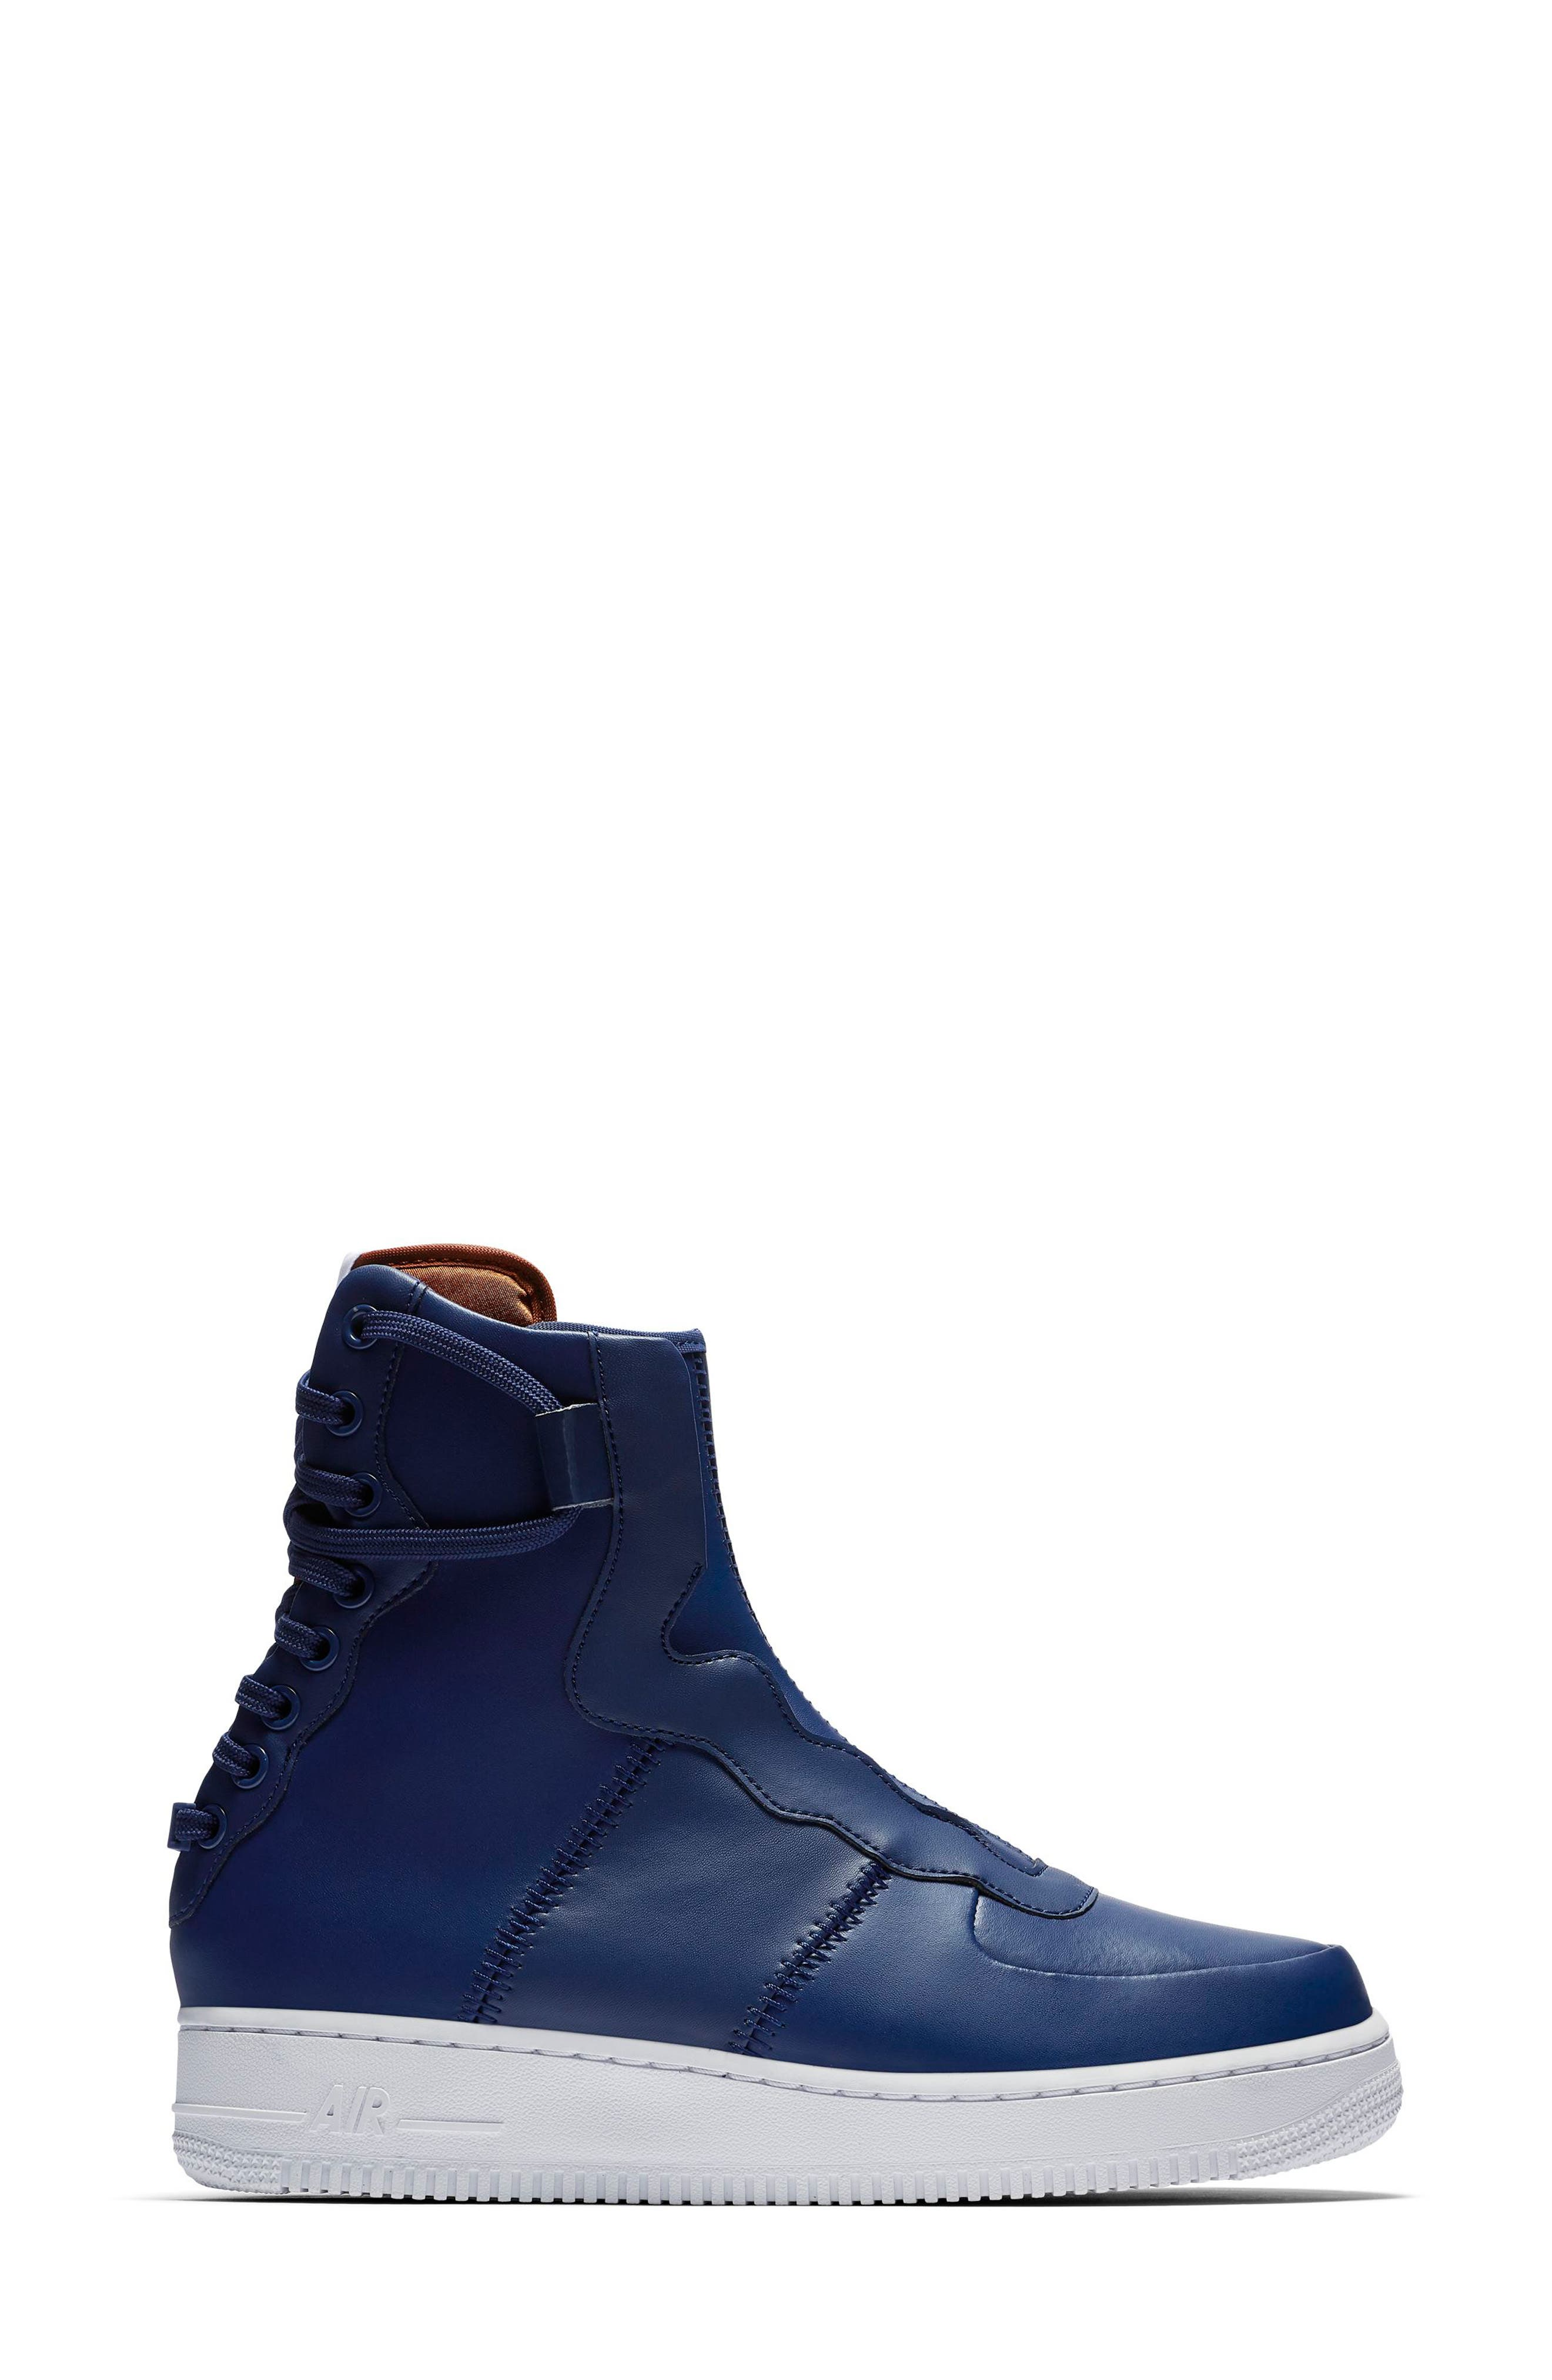 Air Force 1 Rebel XX High Top Sneaker,                             Alternate thumbnail 3, color,                             BLUE VOID/ RUSSET/ WHITE/ BLUE